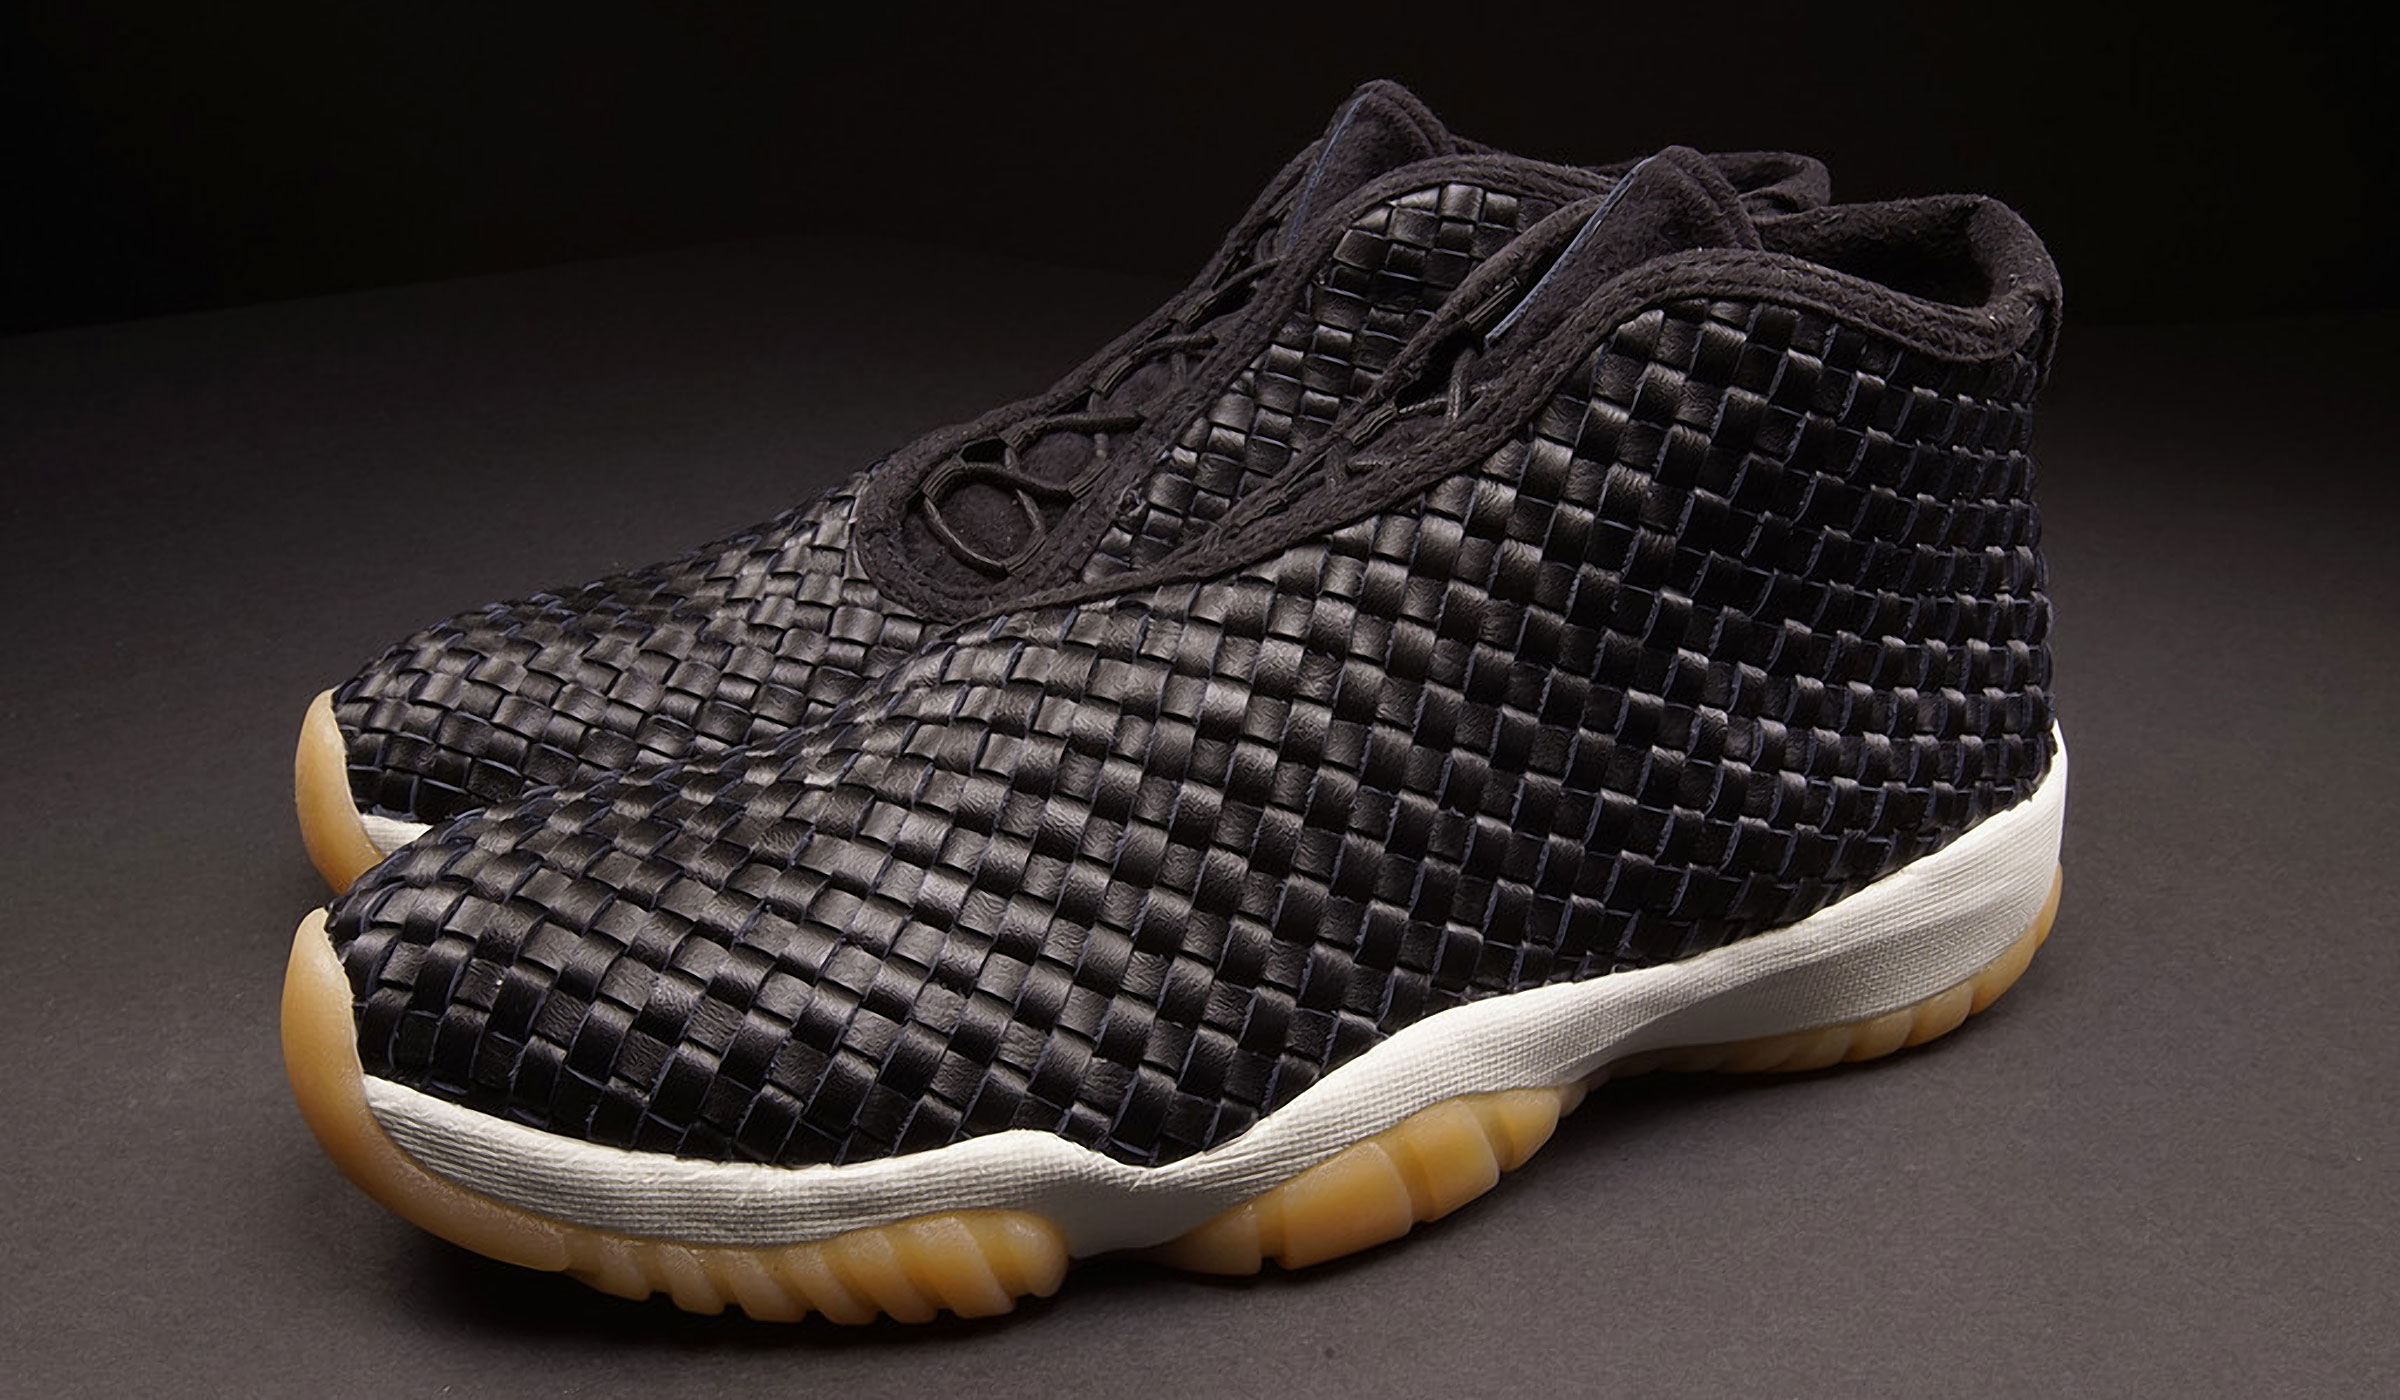 AIR JORDAN FUTURE PREMIUM QS WOVEN - BLACK